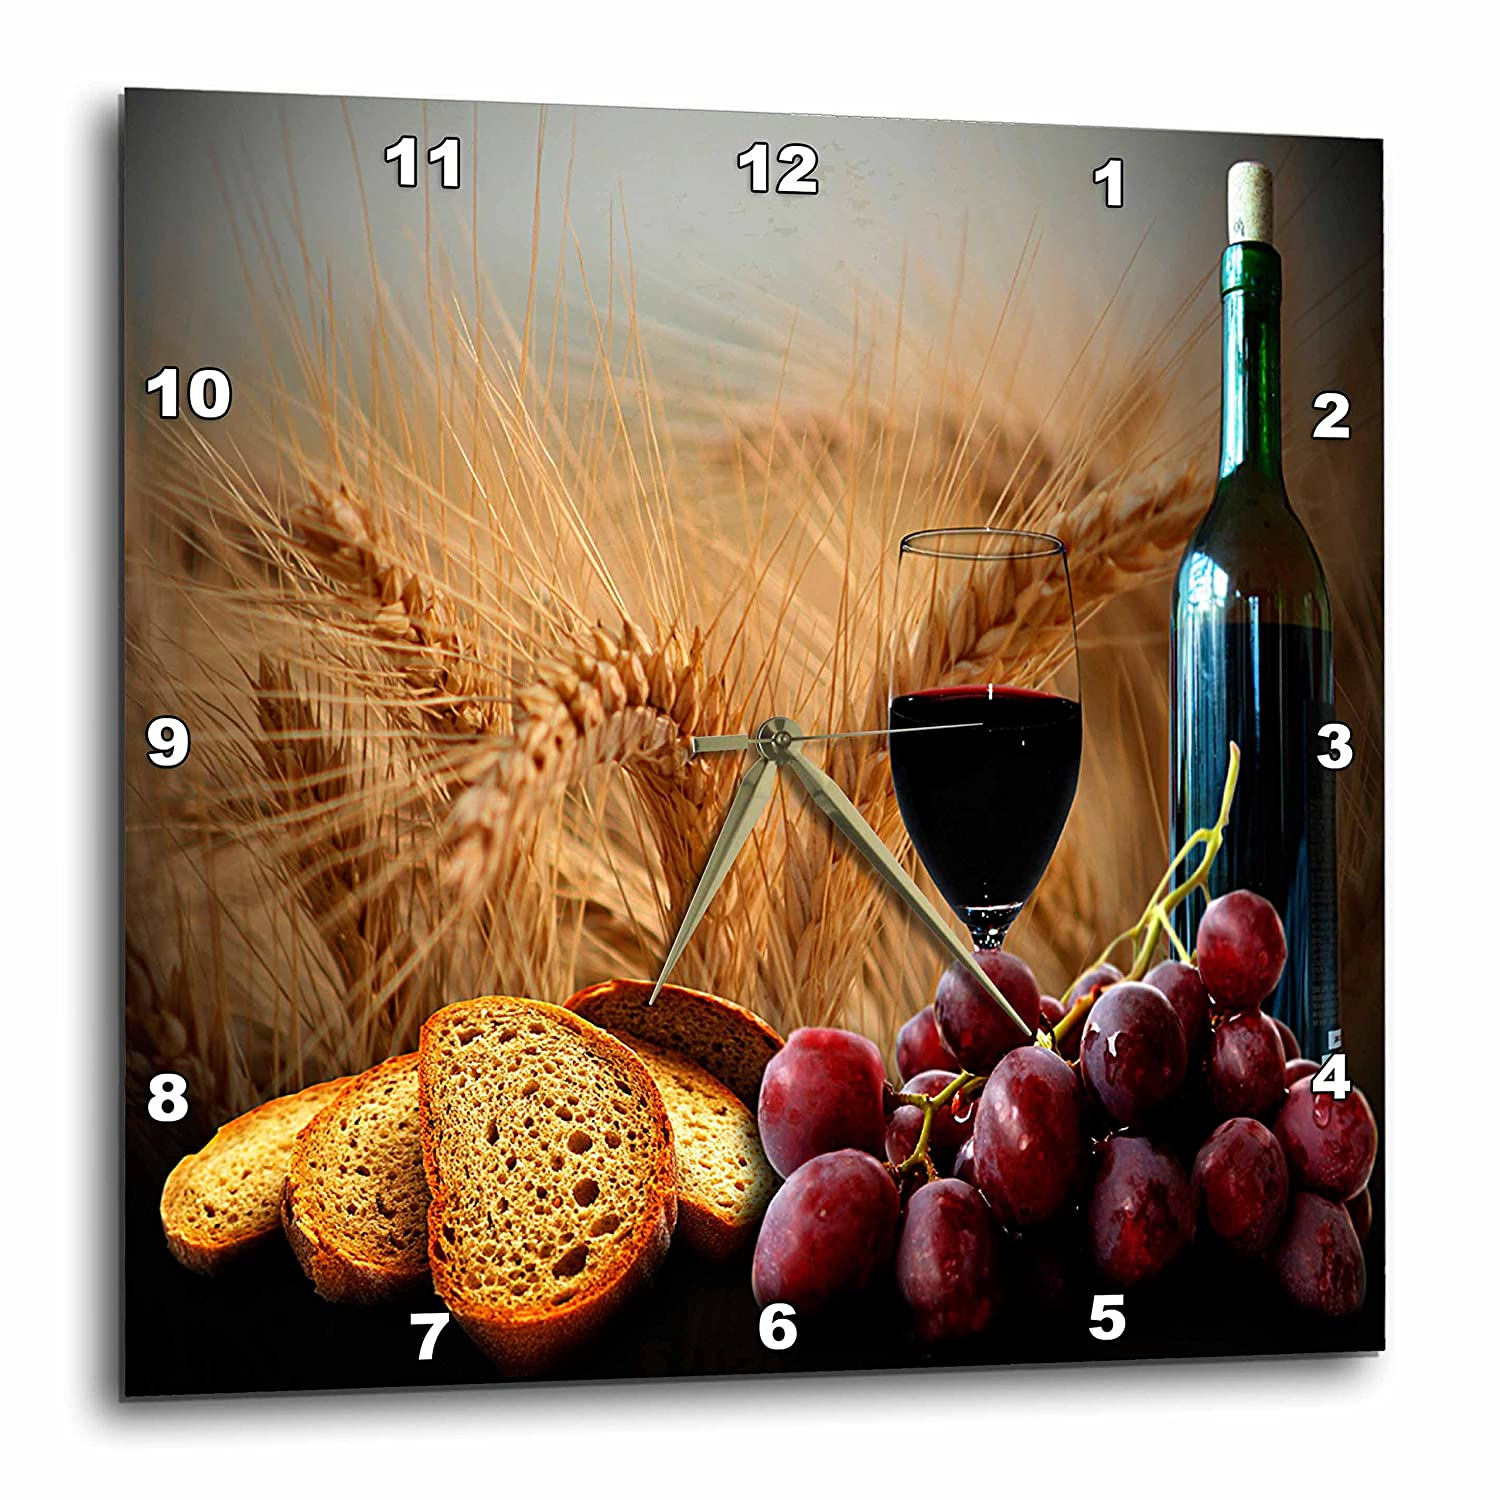 3dRose dpp_14294_3 Wine Bread Grapes Wall Clock, 15 by 15-Inch